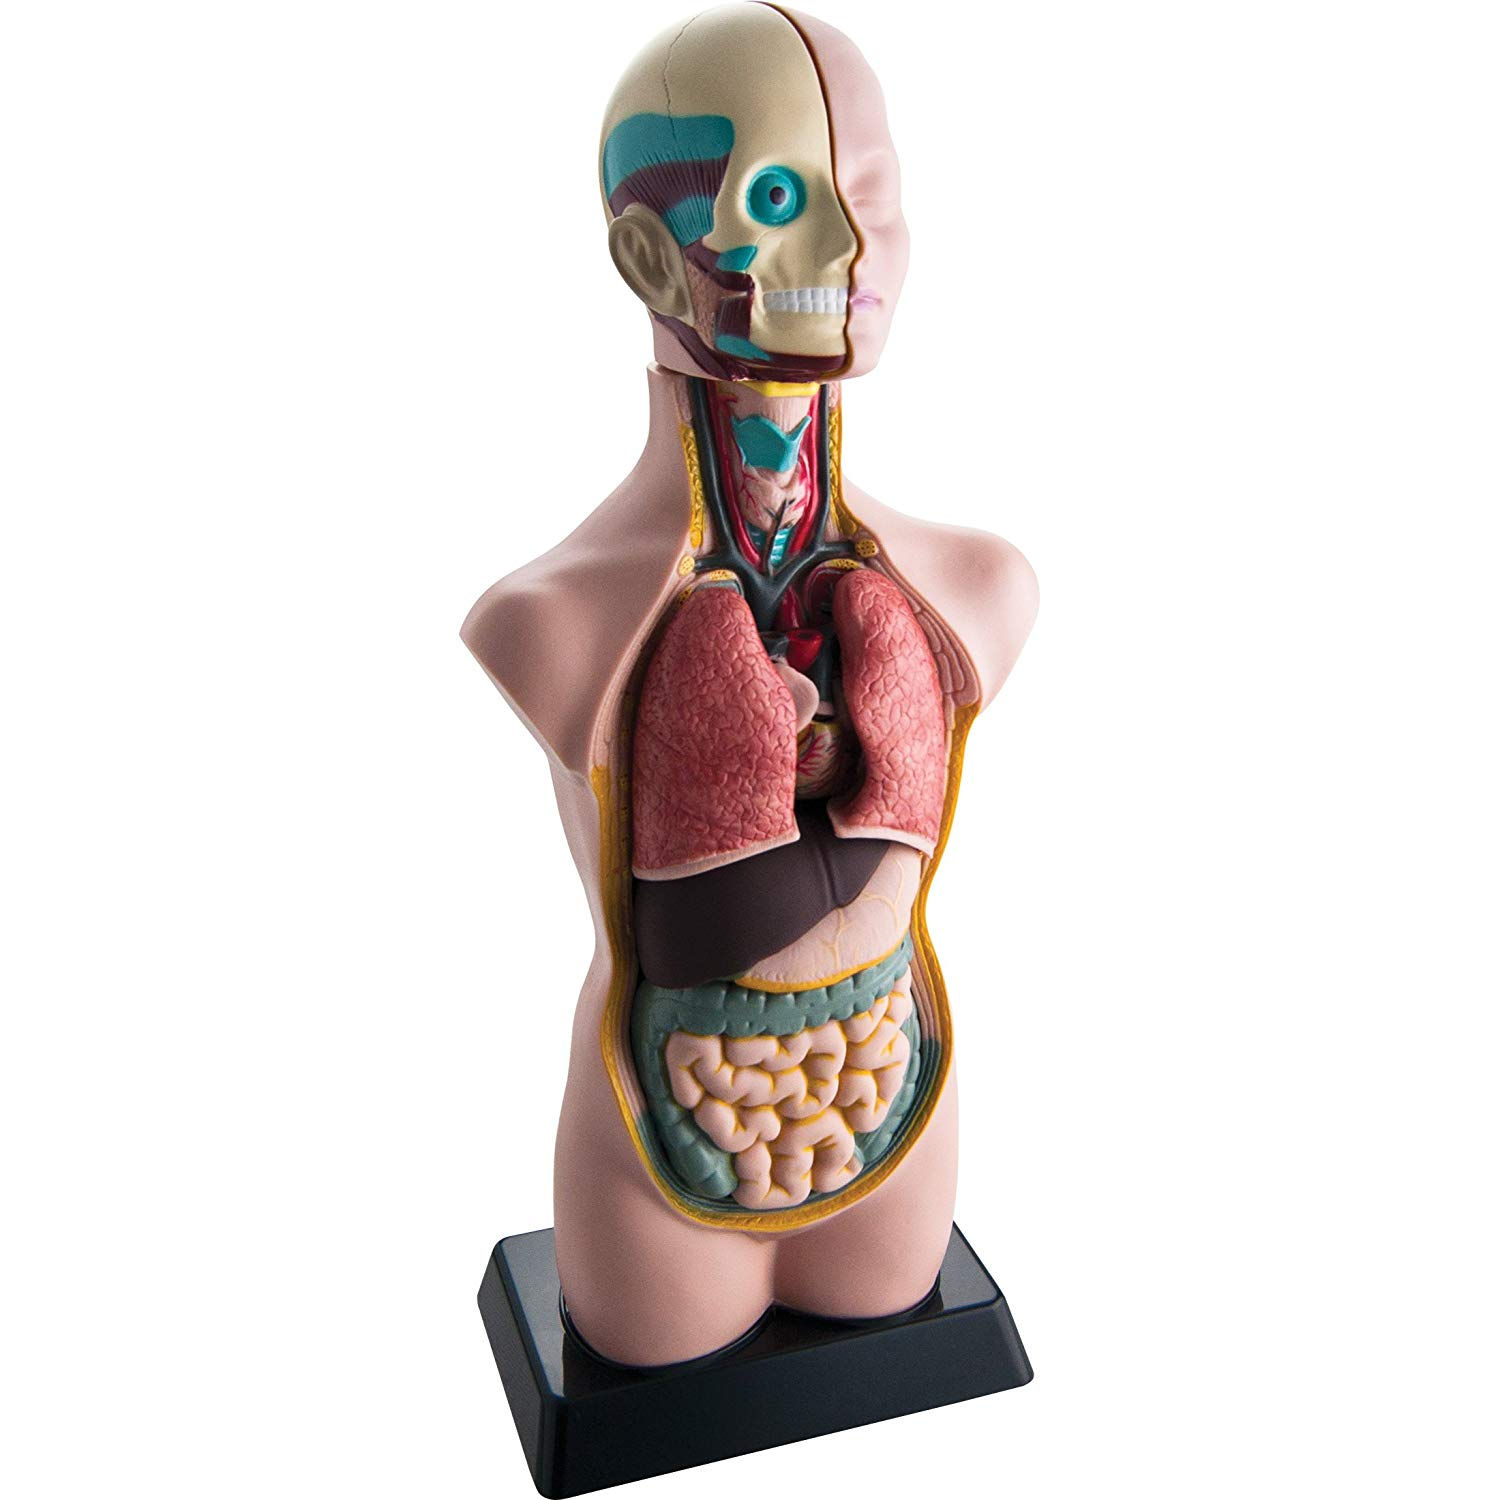 EDU-41007AR Human Body Torso Anatomical Model w/APP